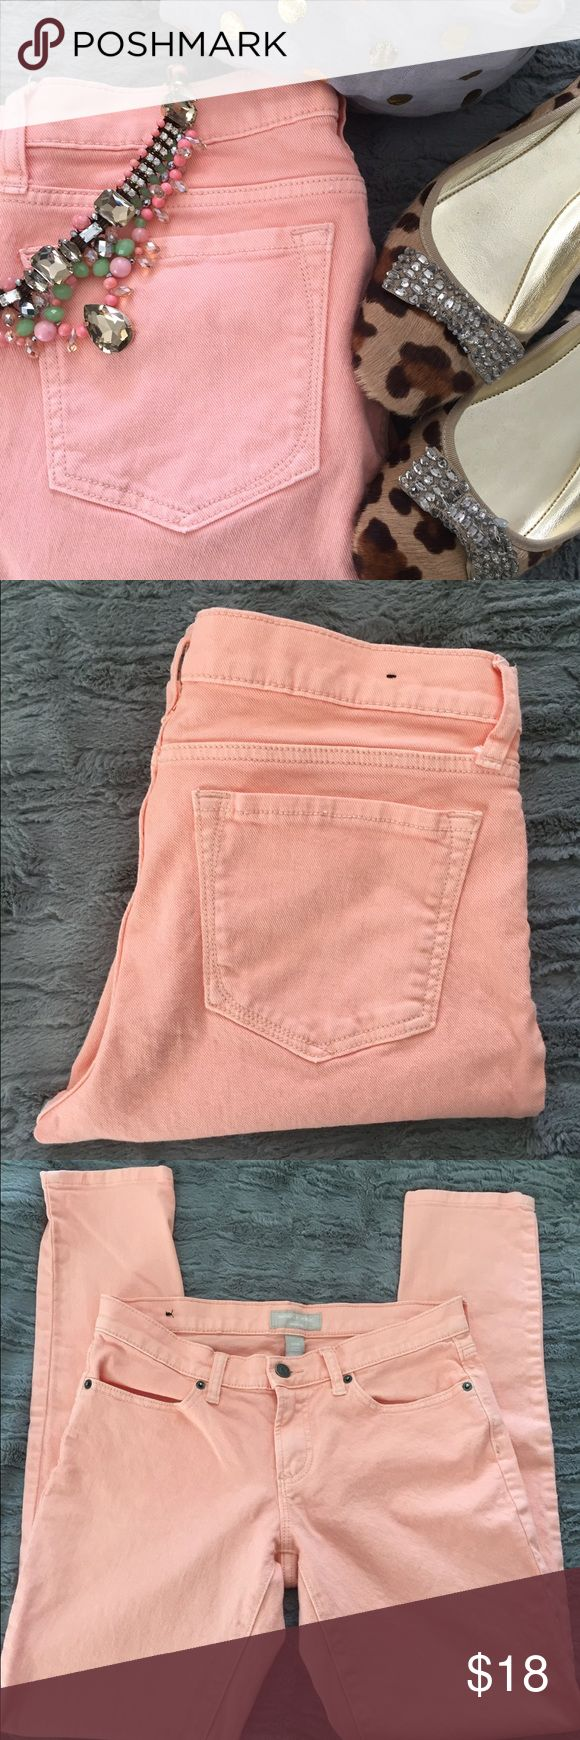 Banana Republic Peach Skinny Jeans Re-poshed! Gently used adorable peach skinny jeans in size 6/28. I have something similar and don't need them. Banana Republic Pants Skinny